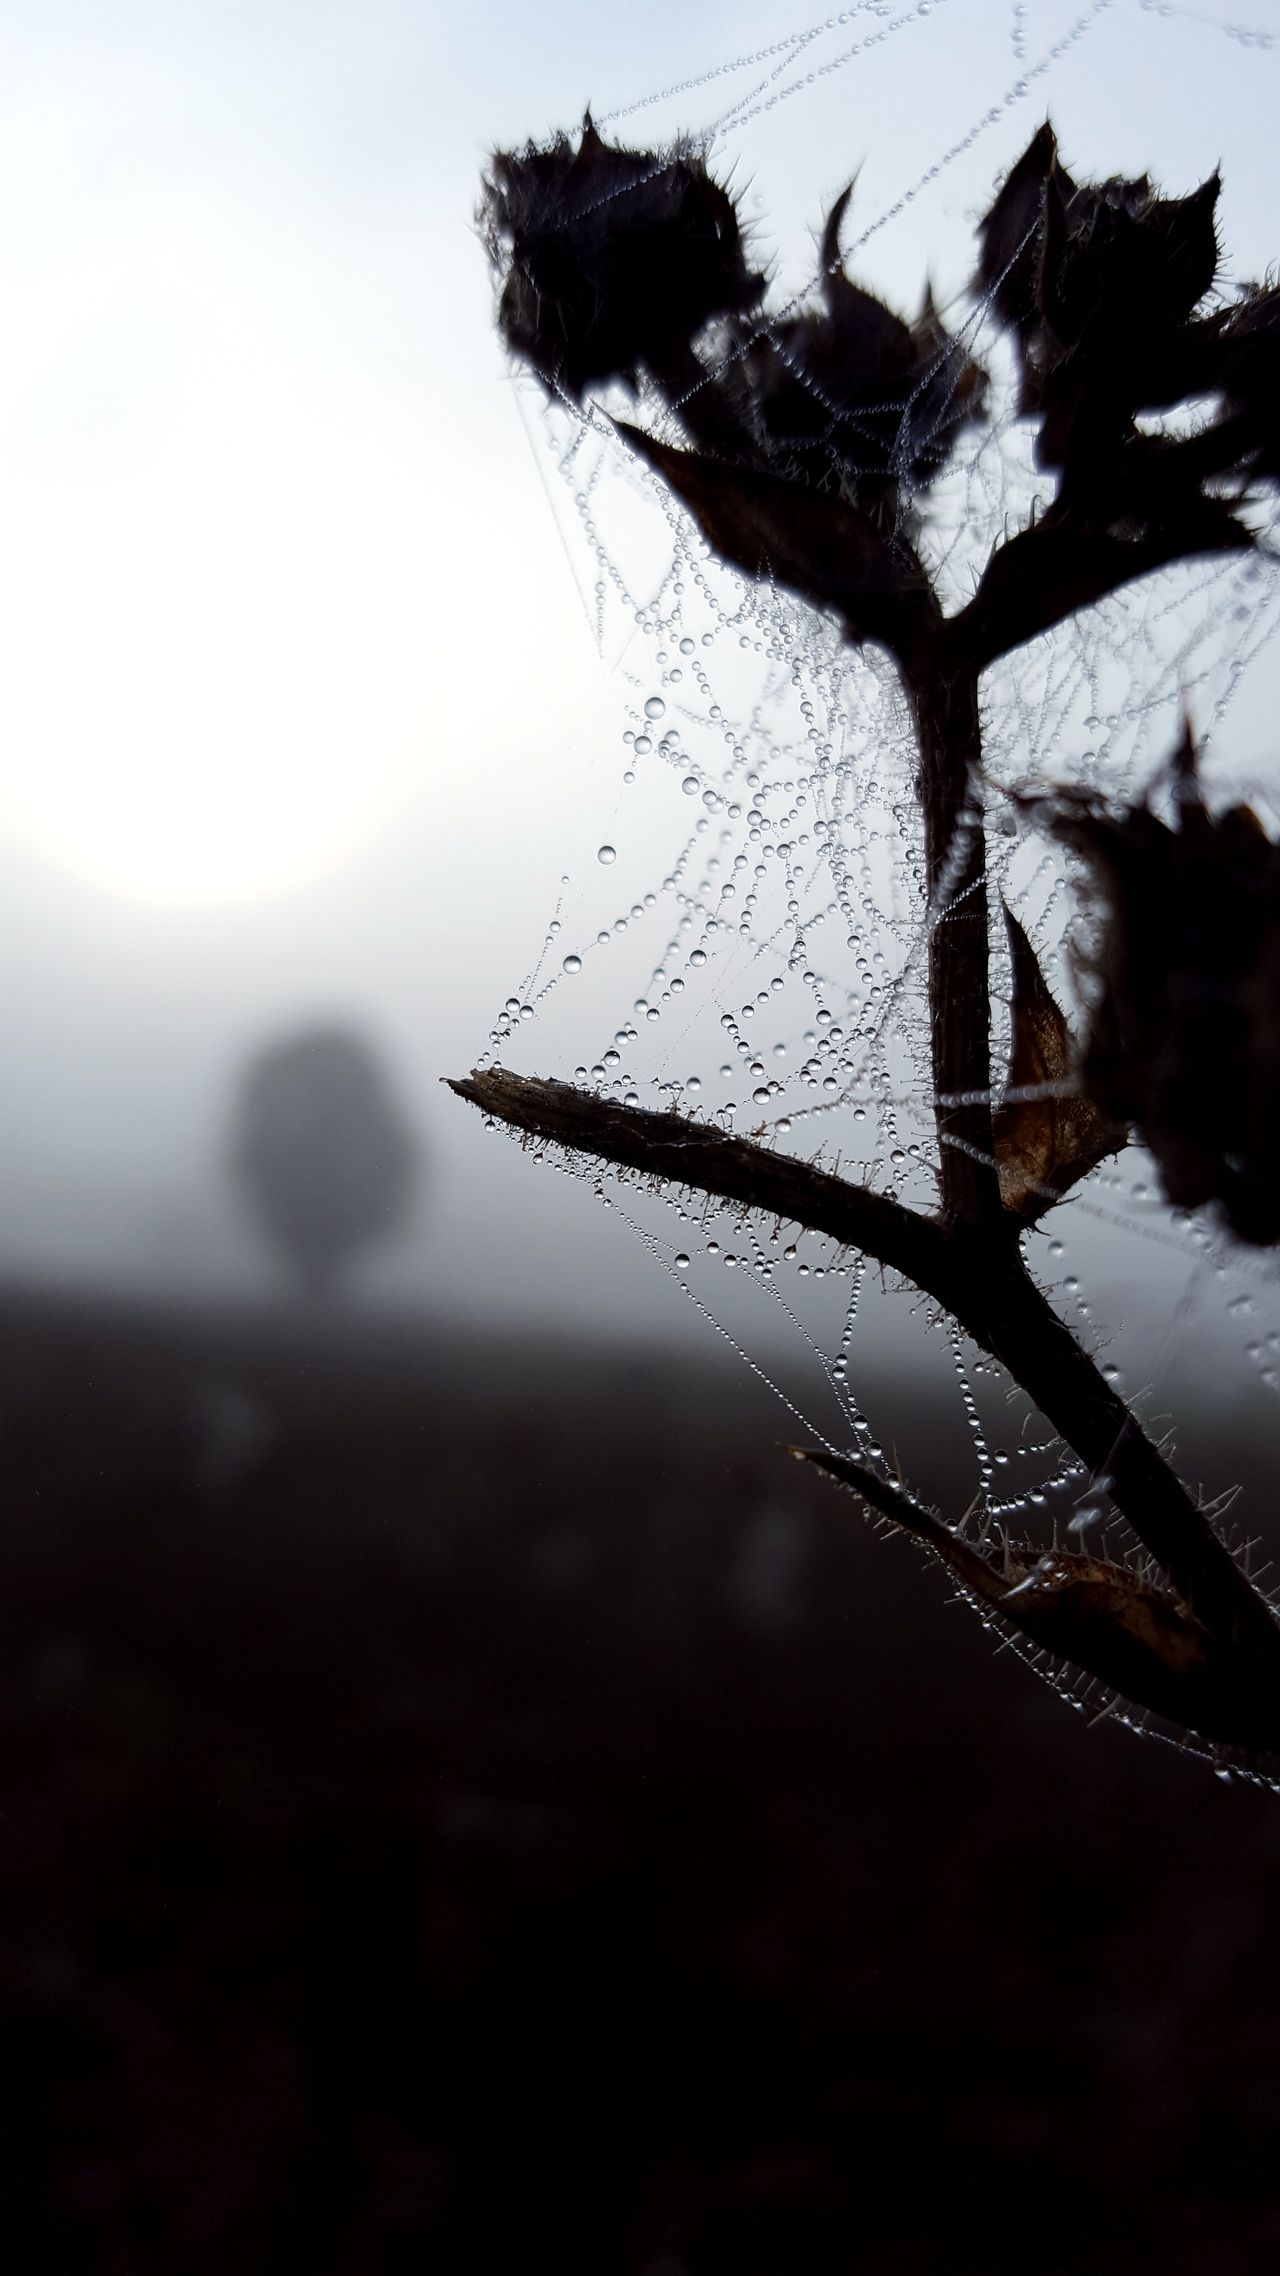 Vertical Water Drop Silhouette Nature Rain Sky Close-up Tree Branch Outdoors Beauty In Nature No People Fragility Day The Week On EyeEm Eye4photography  Focus On Foreground Landscape_photography Foggy Morning Mobilephotography From My Point Of View Spider Web Beauty In Nature Web